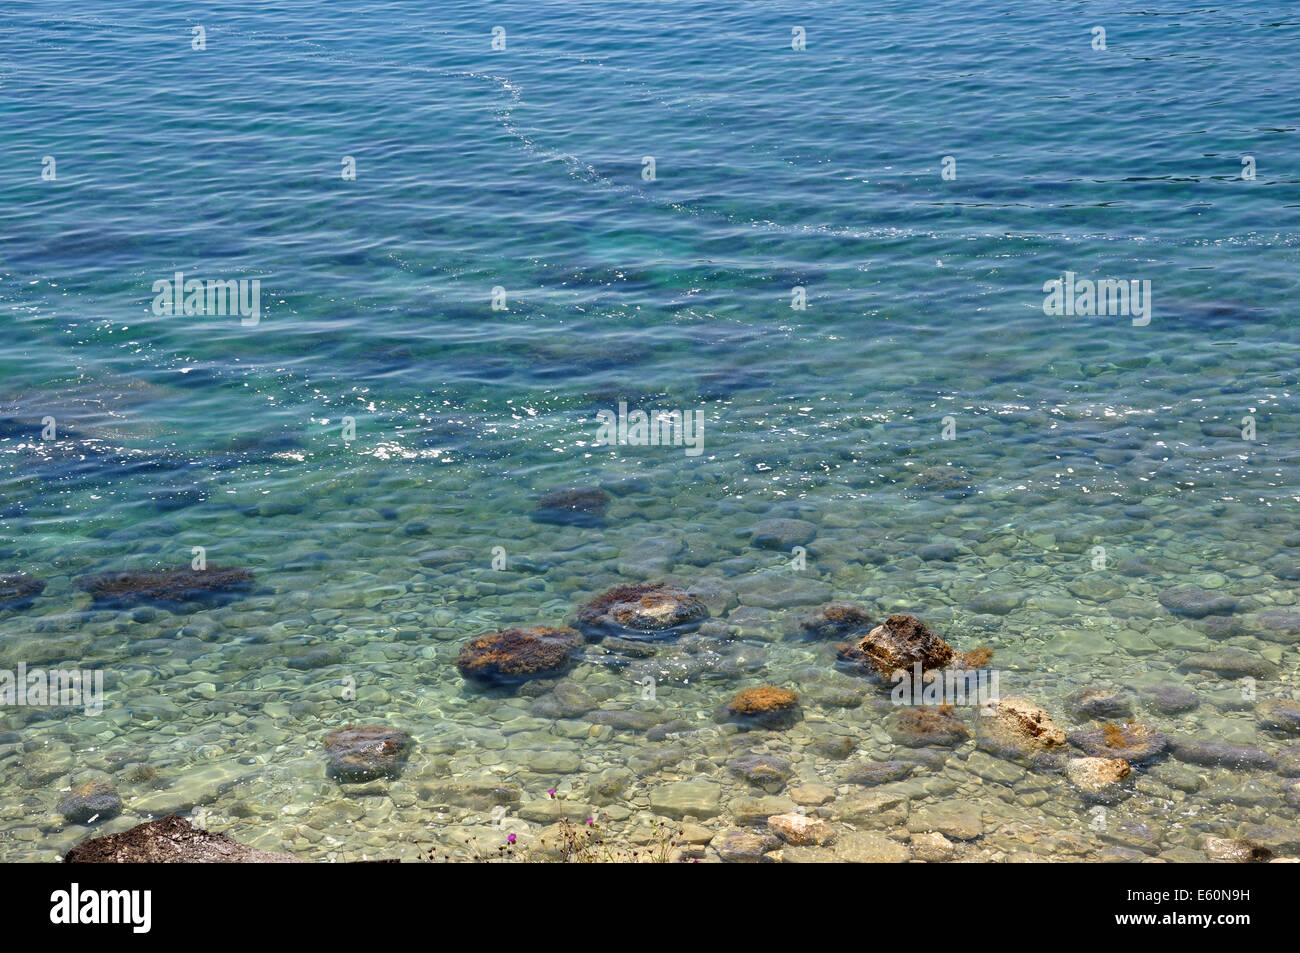 Dirt floating on sea surface. Polluted beach environmental issues. Stock Photo